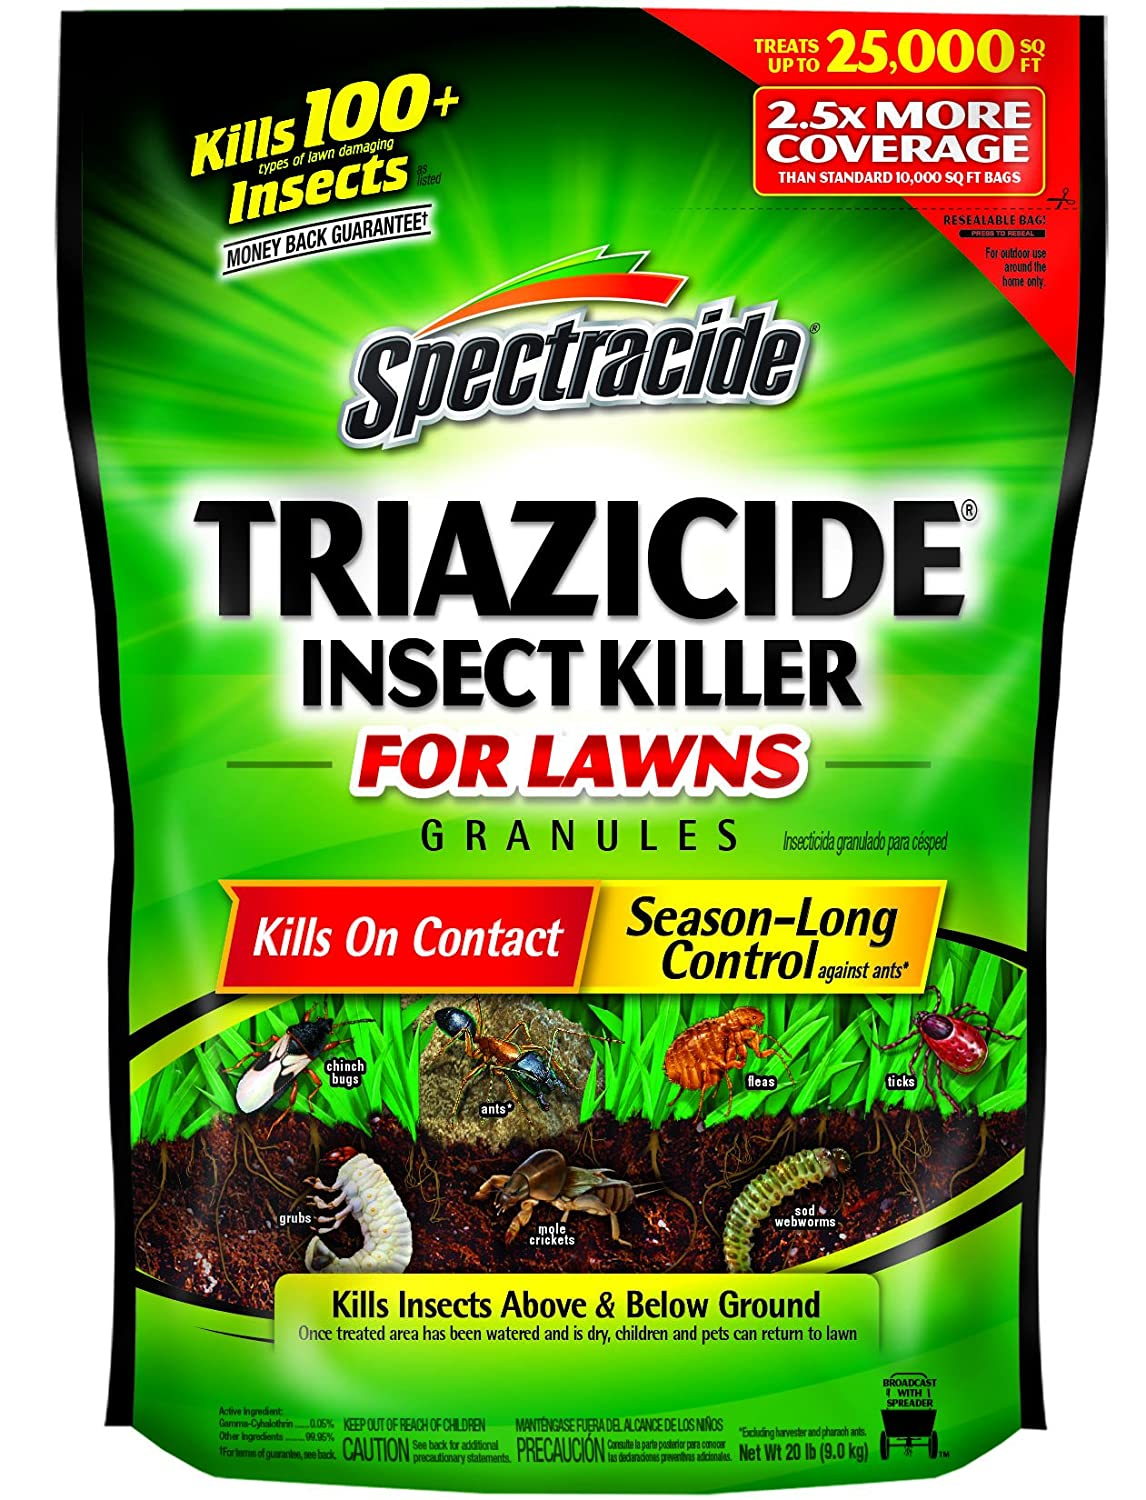 Spectracide Triazicide Insect Killer for Lawns Granules Review